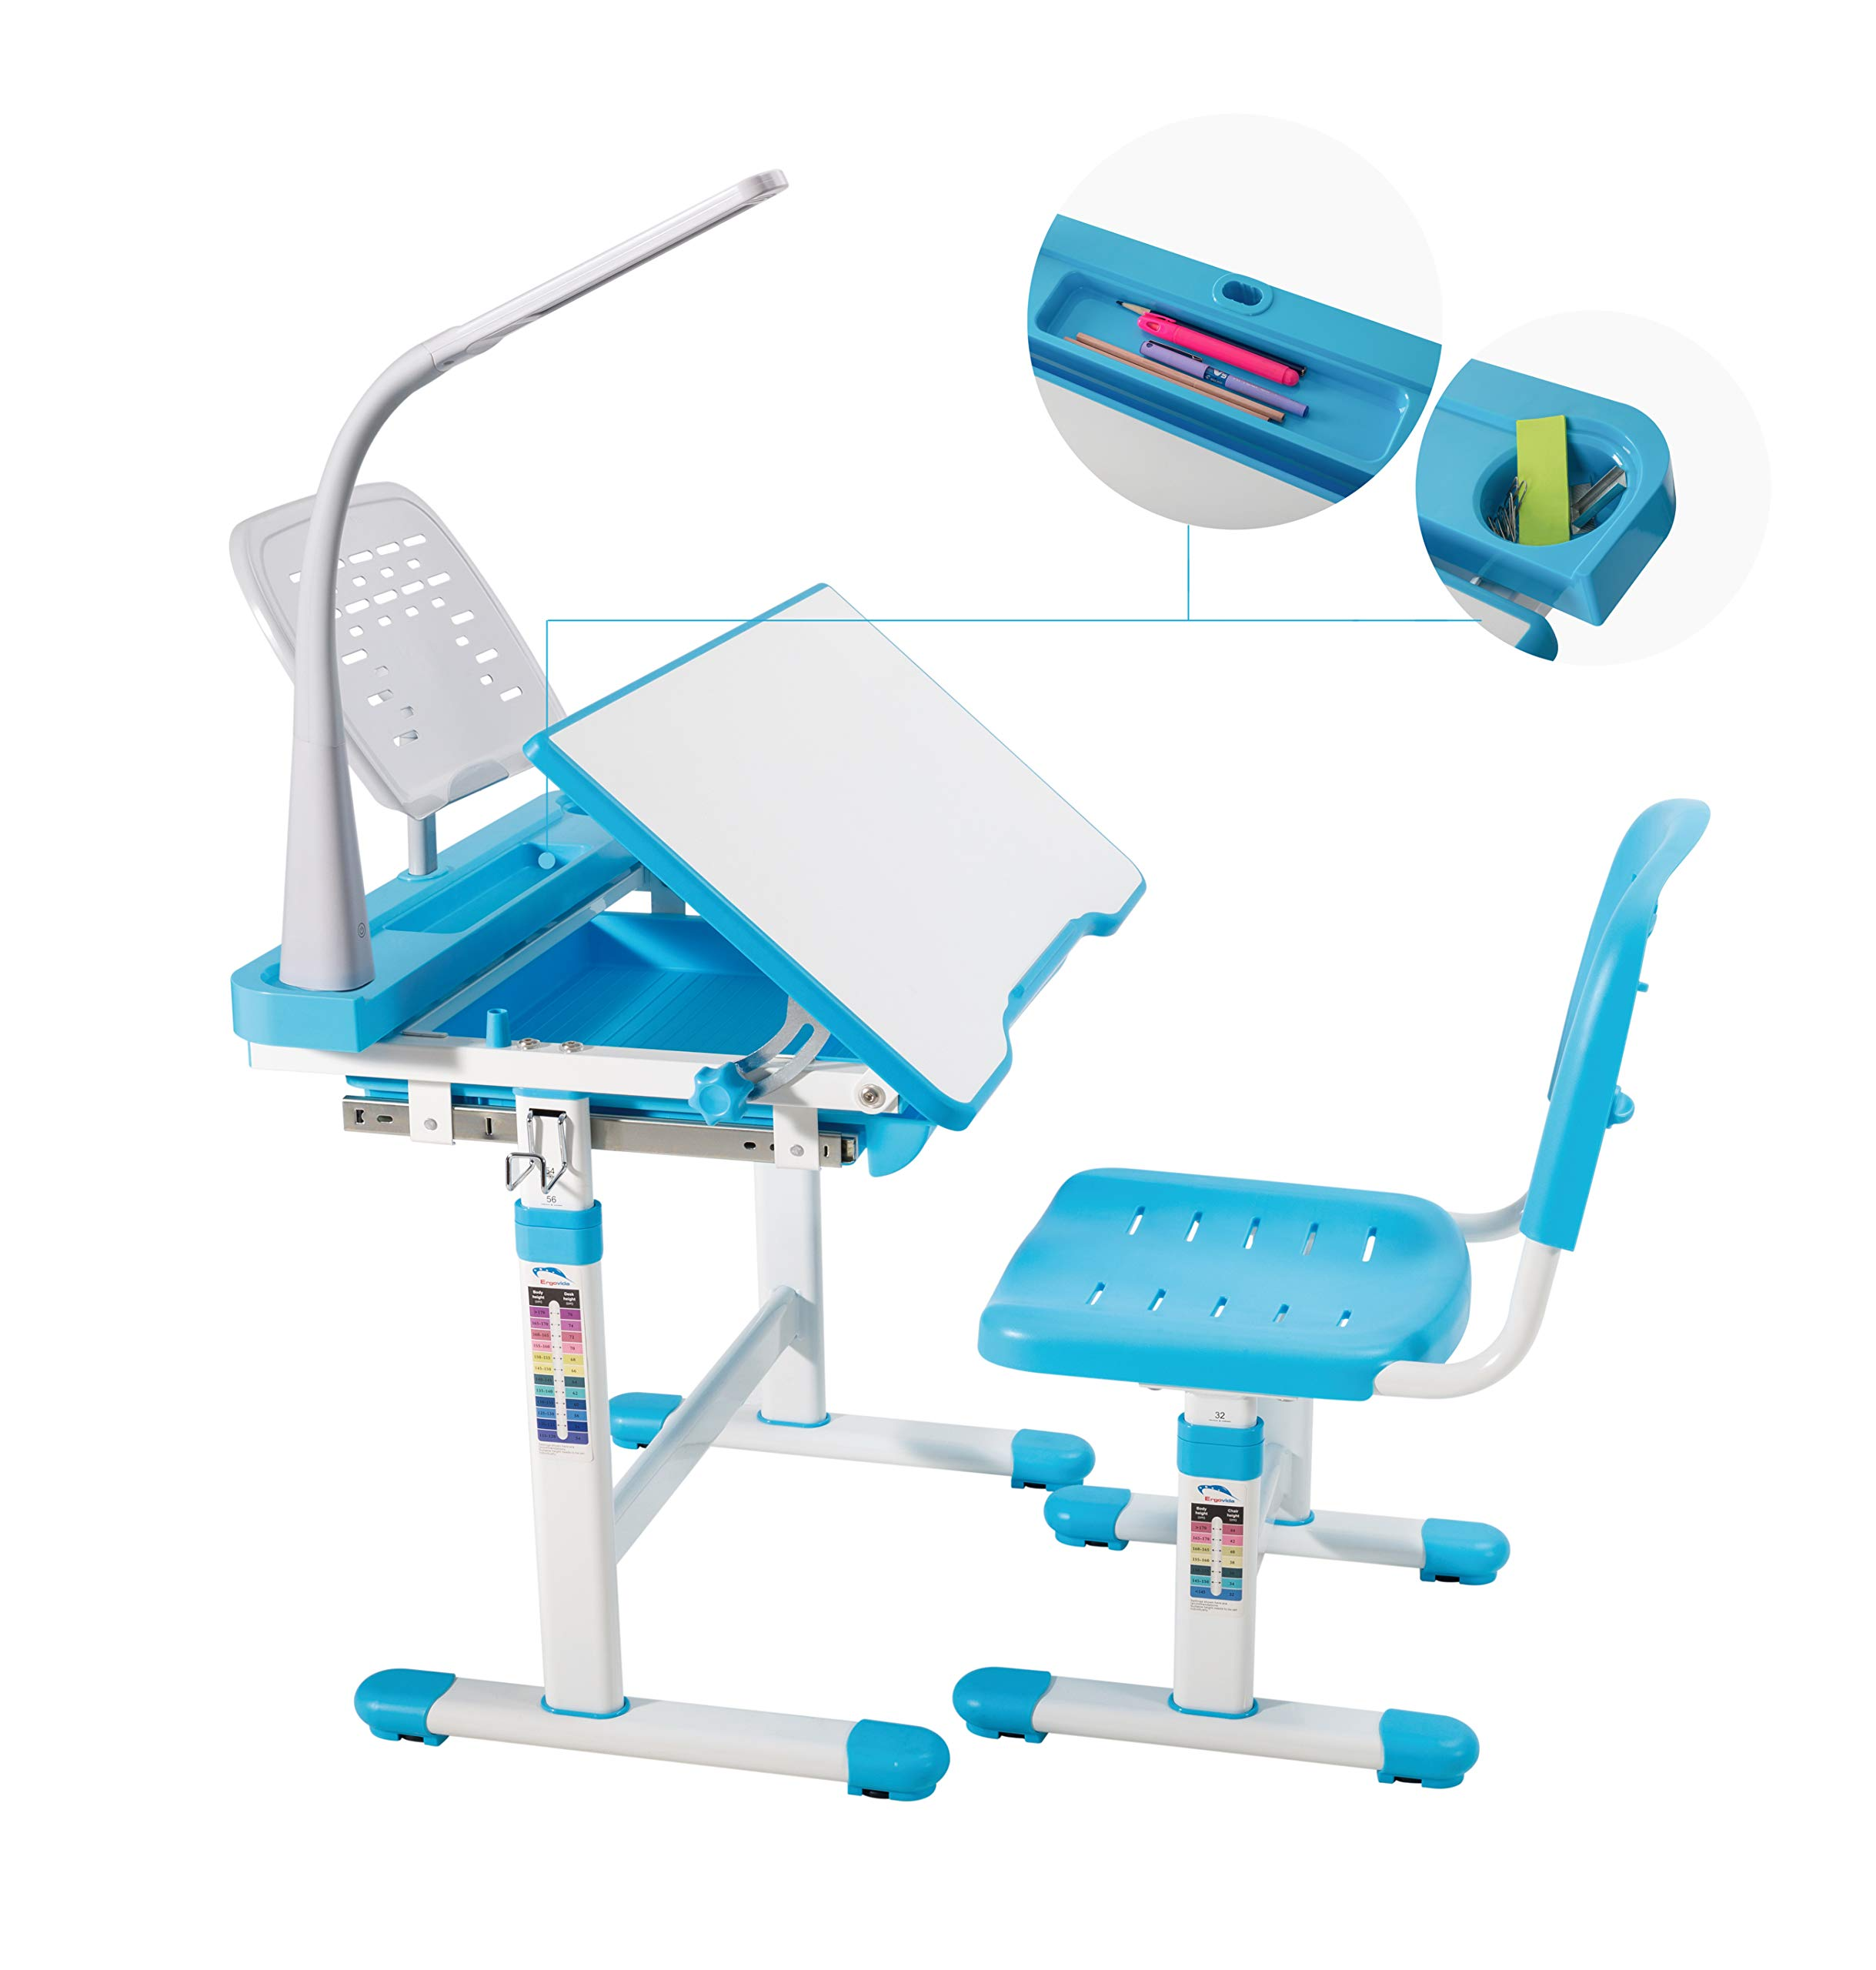 mecor Children Desk,Kids Study Table and Chair Set Adjustable Childs Desk w/Lamp School Student Writing Desk w/Pull Out Drawer Storage,Pencil Case,Bookstand Blue by mecor